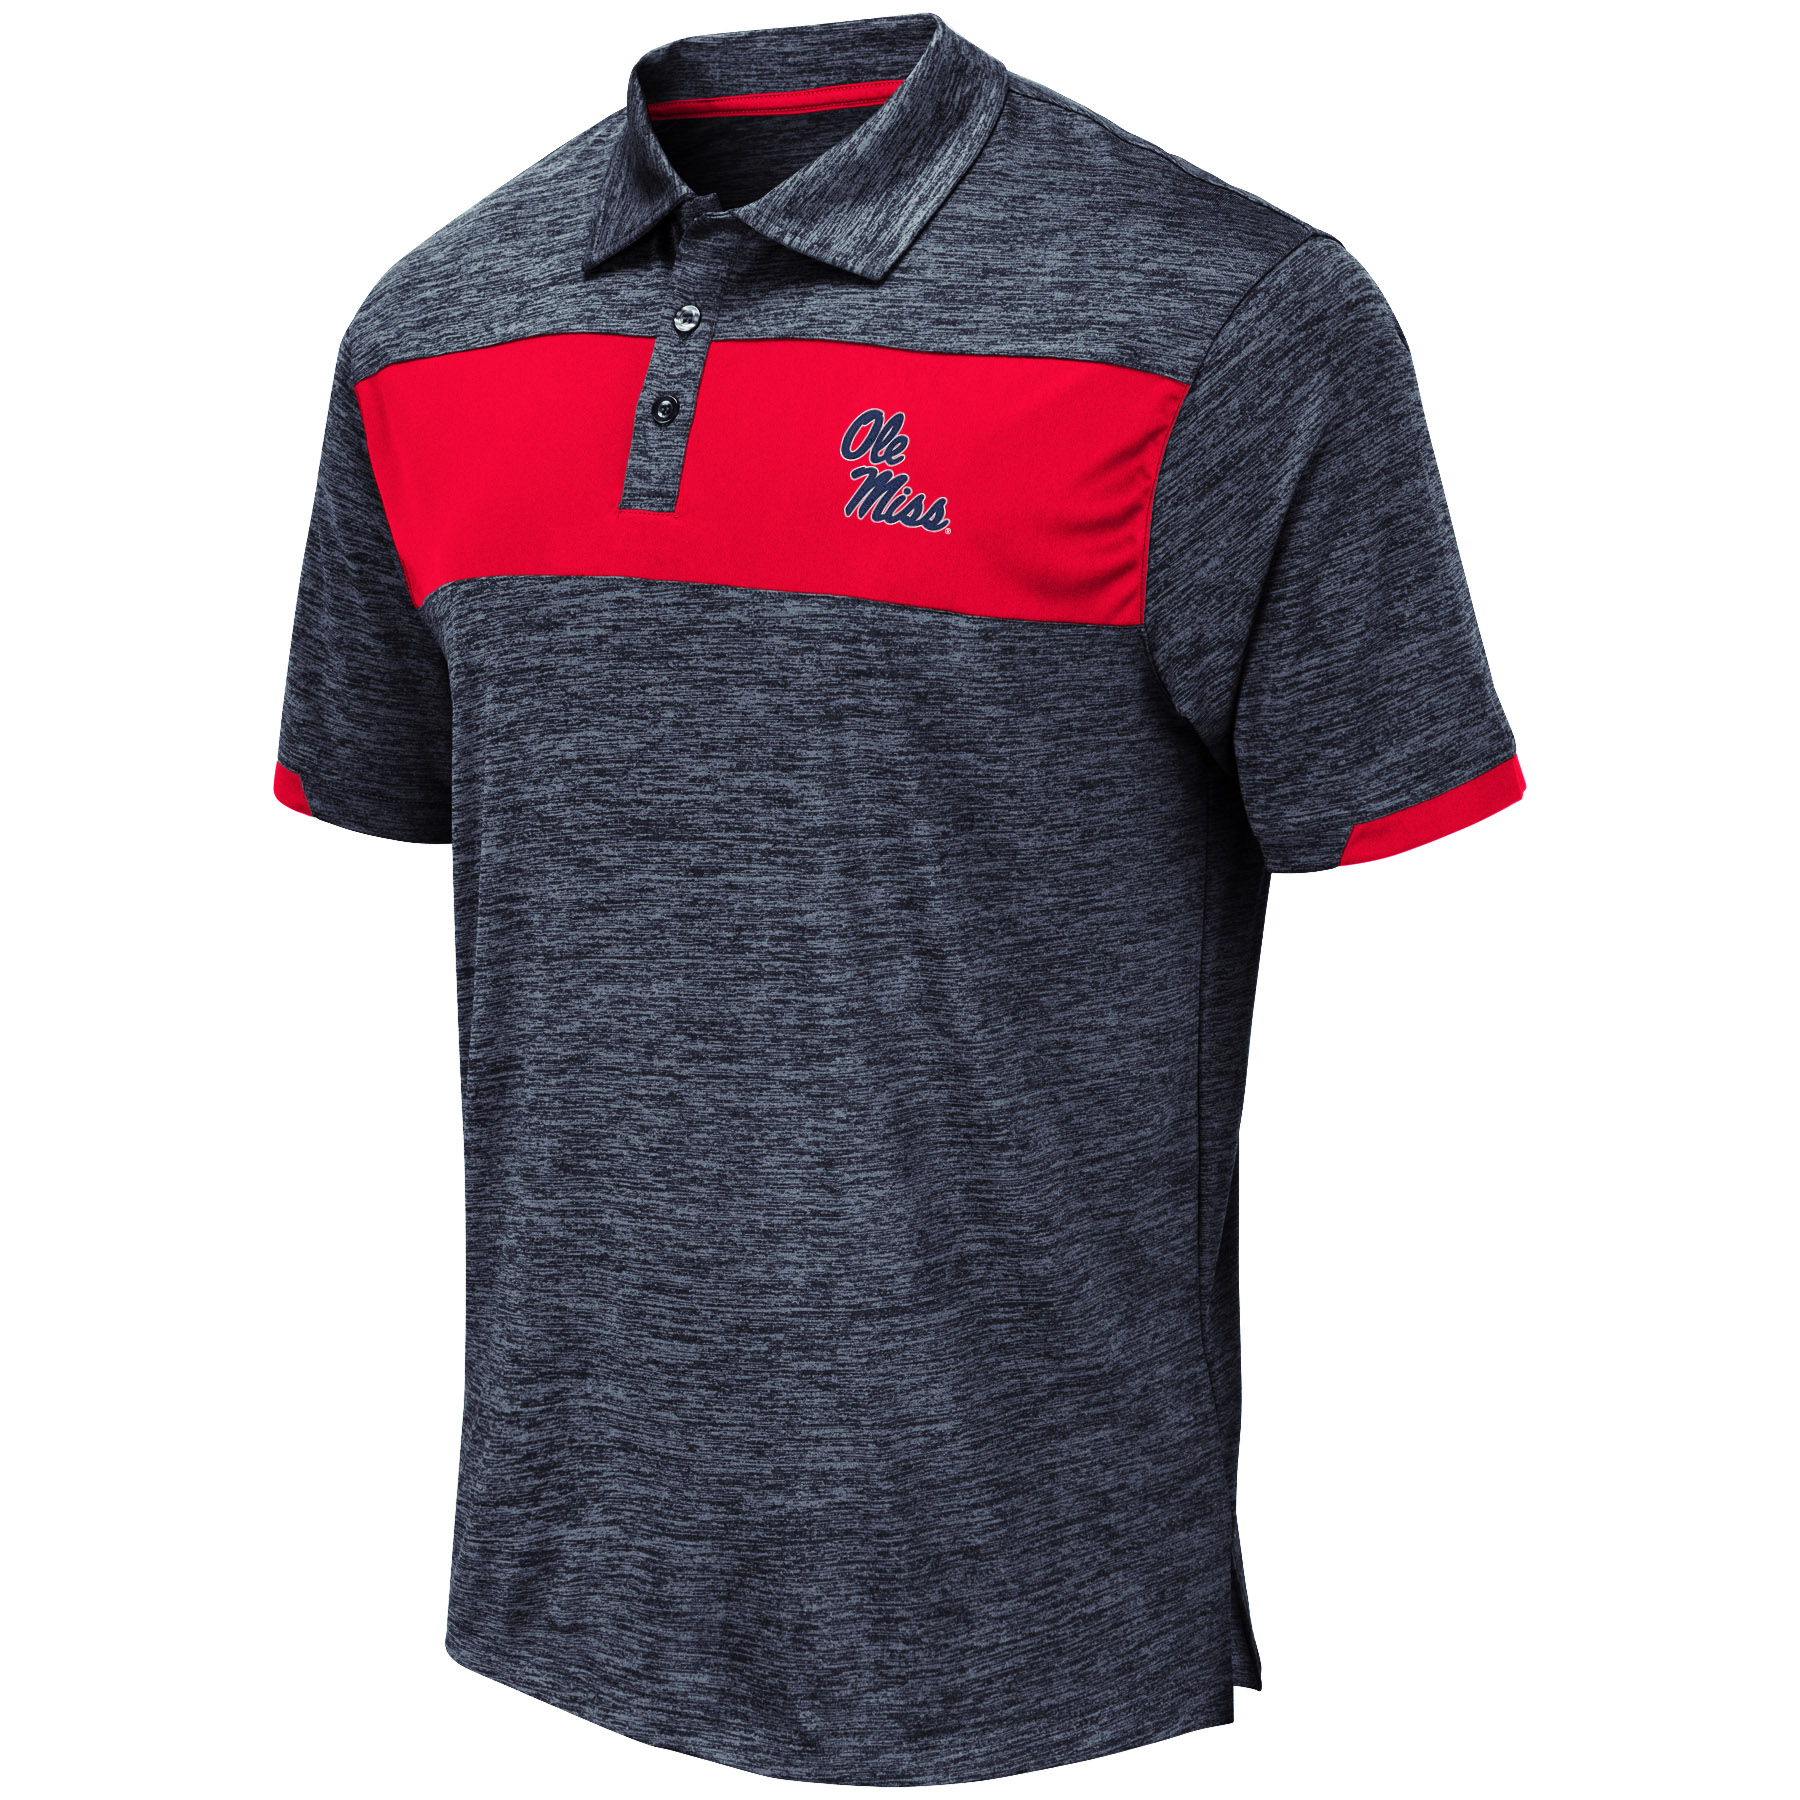 Nelson Polo Navy Heather Red Chest Stripe